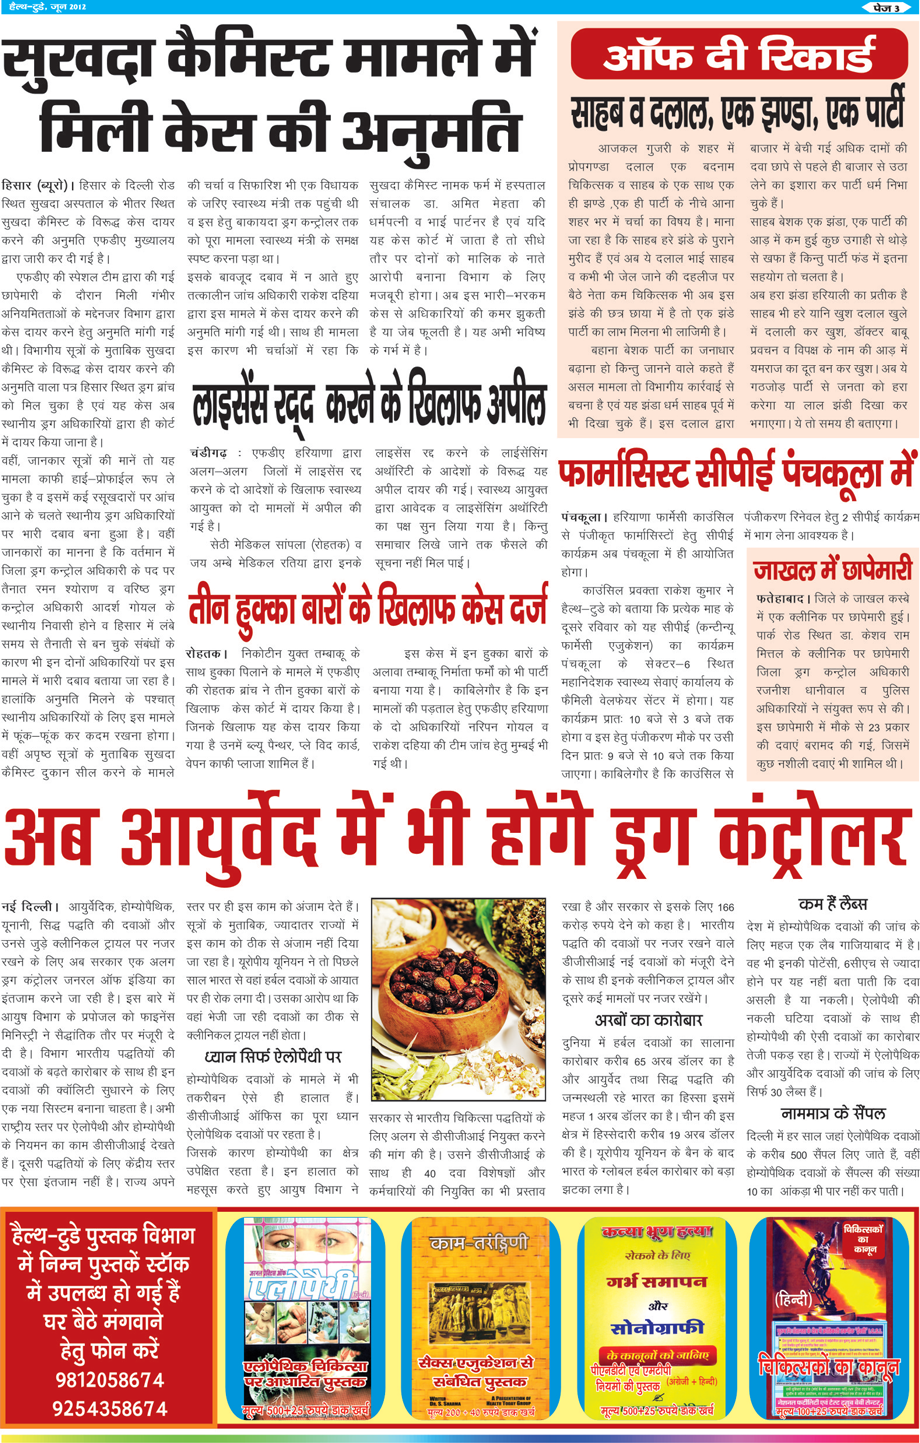 sukhda chemist hisar hospital news off the record pharma health medical news india health today newspaper